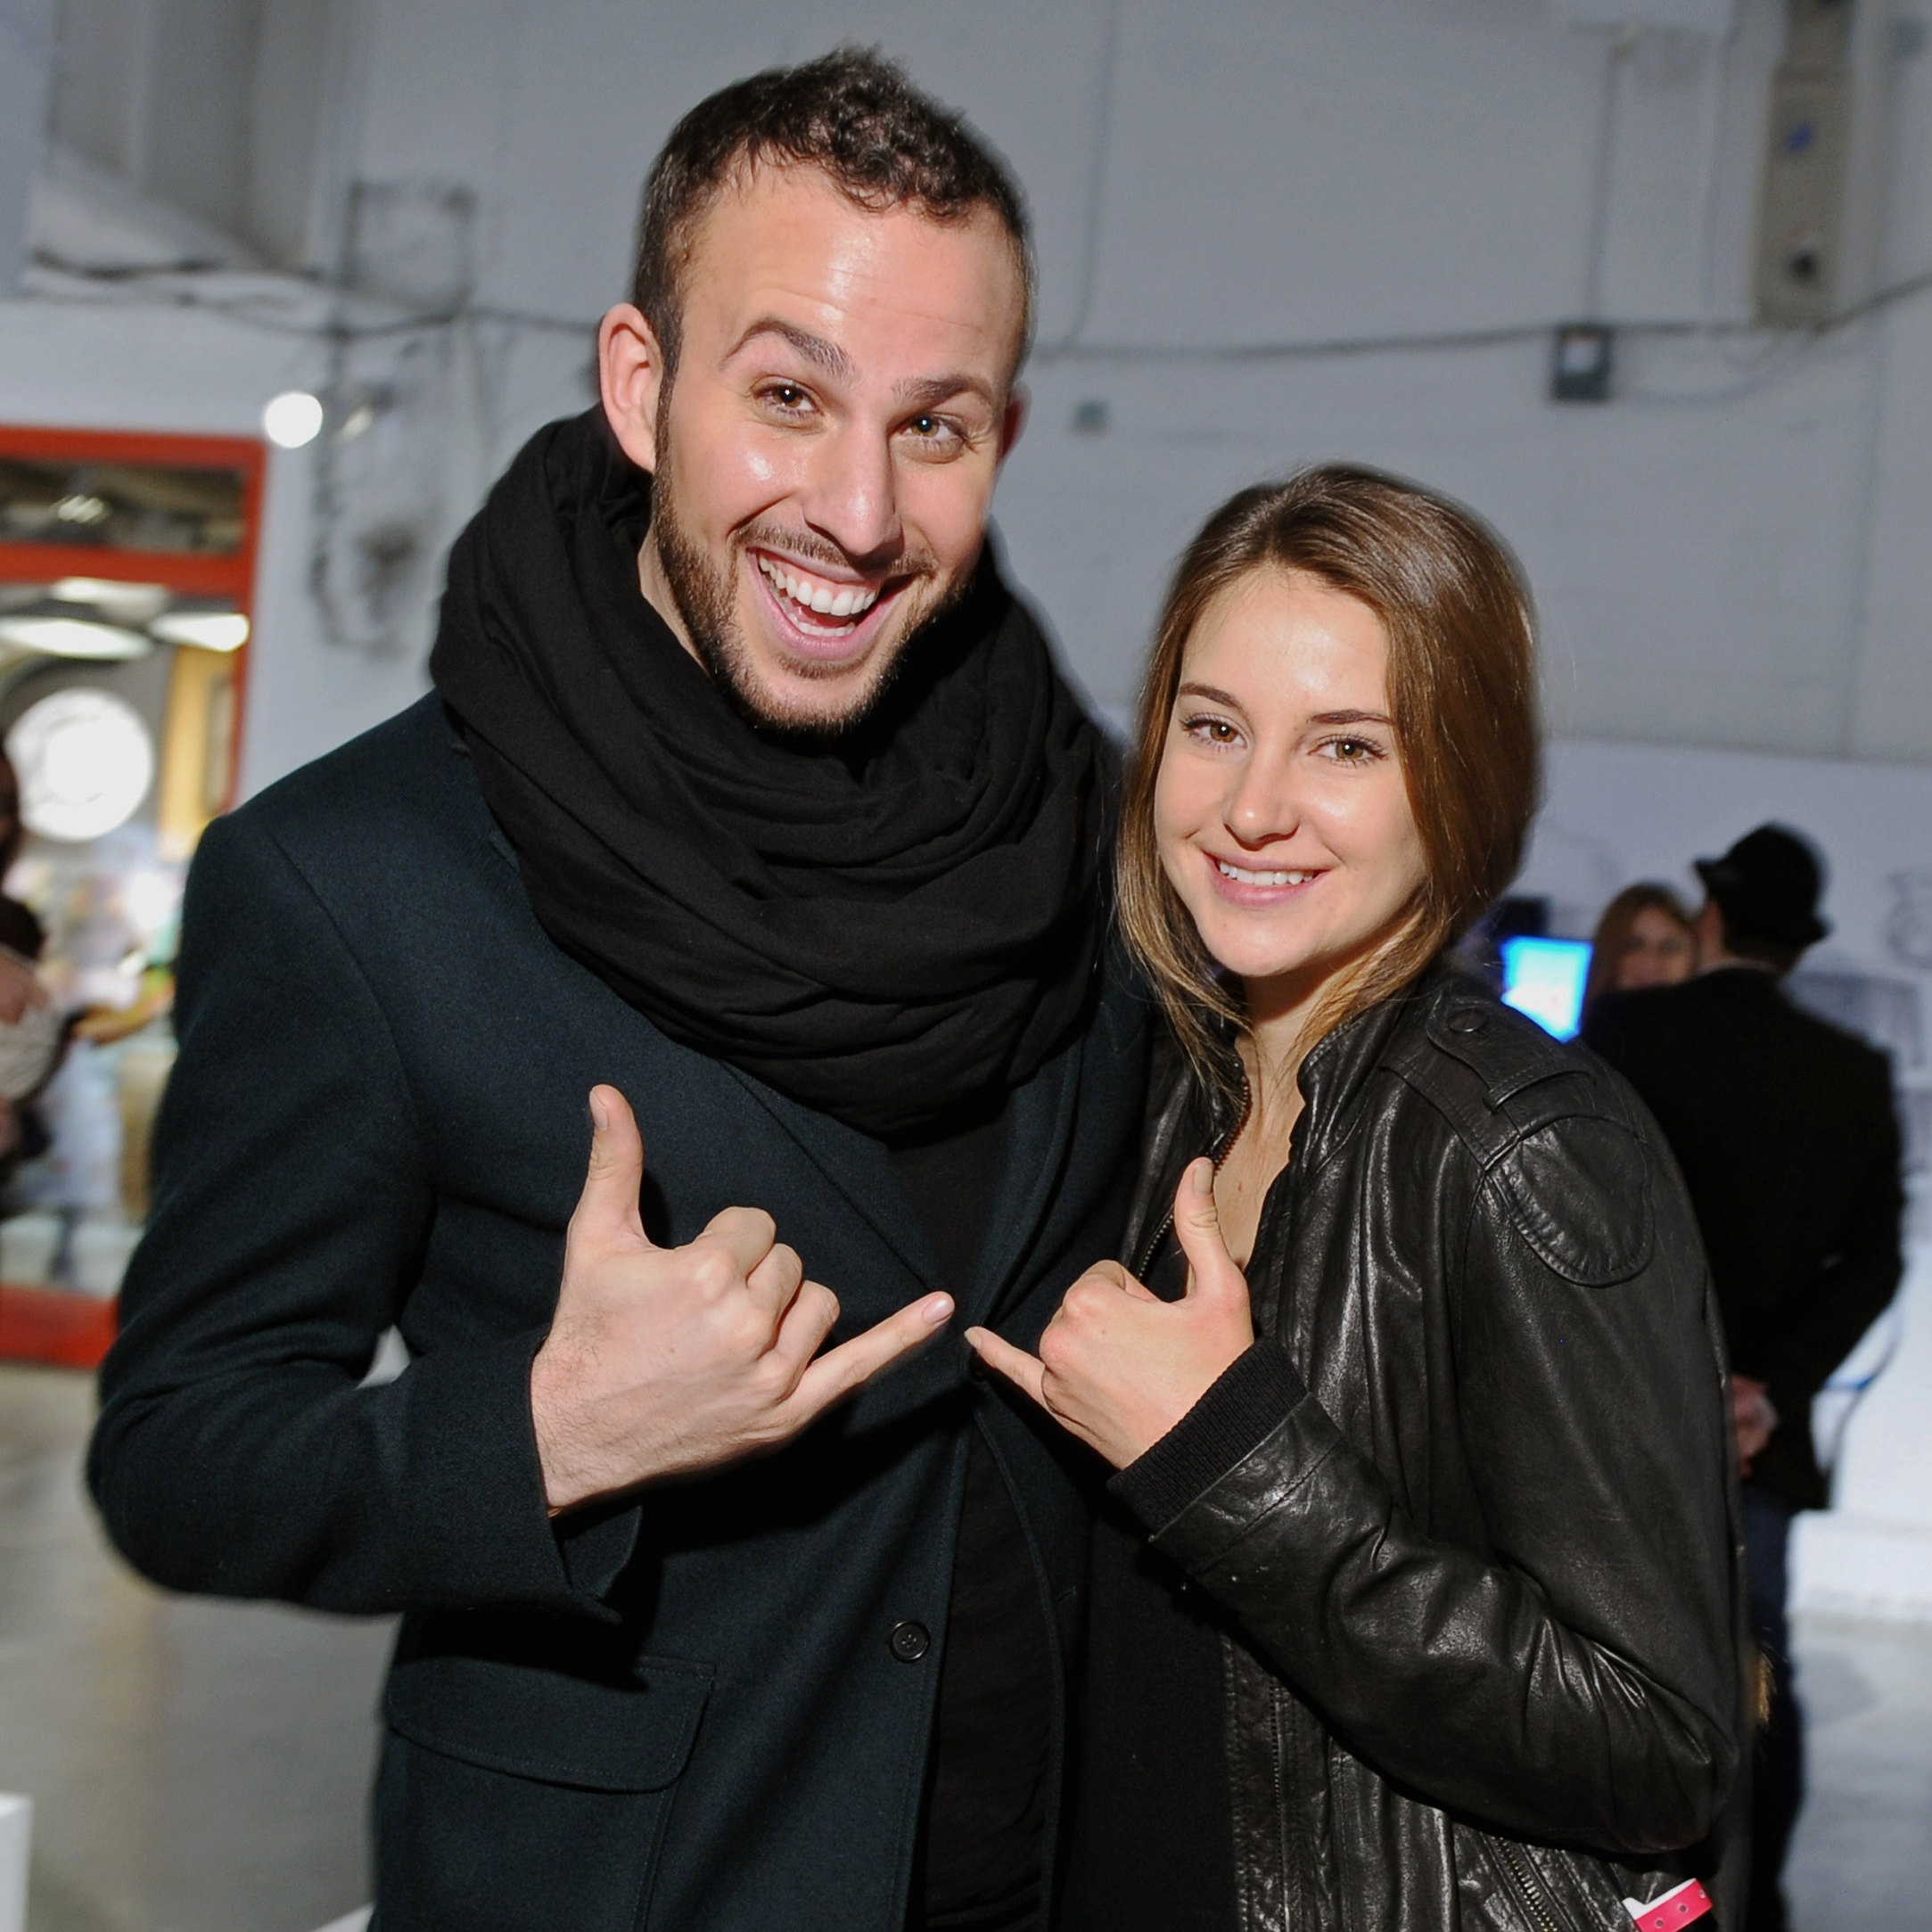 Micah Jesse and Shailene Woodley